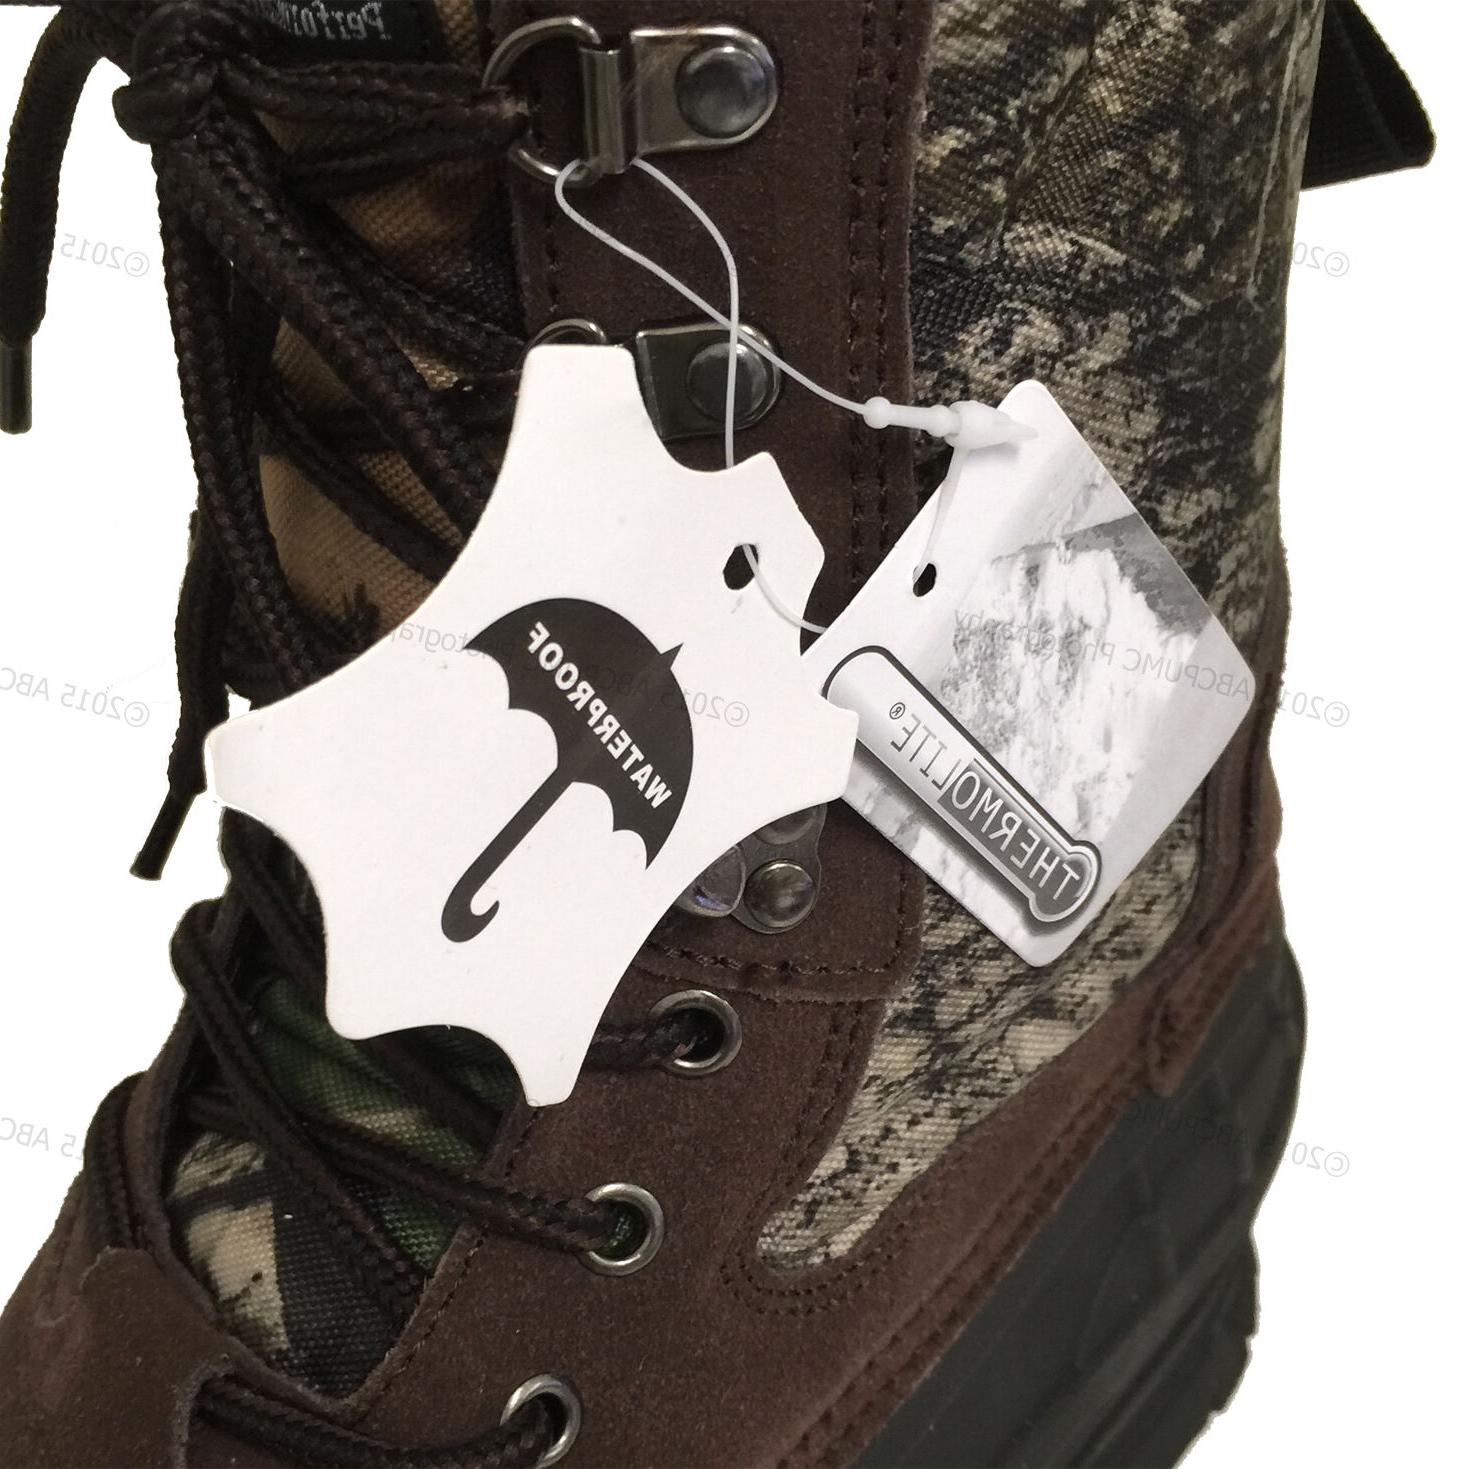 New Men's Boots Leather Waterproof Insulated Hunting